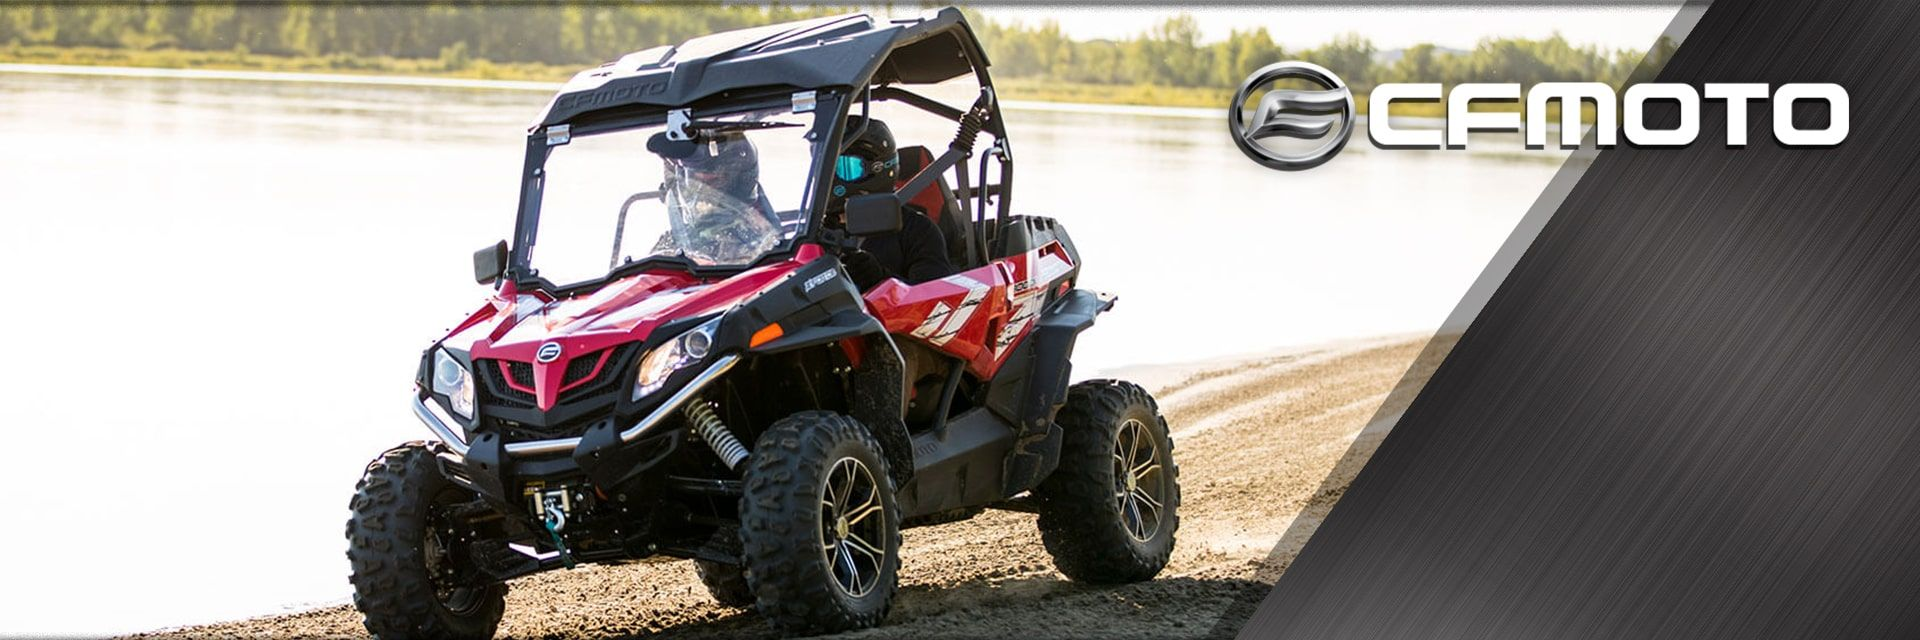 Shop CFMoto at Team X-TREME